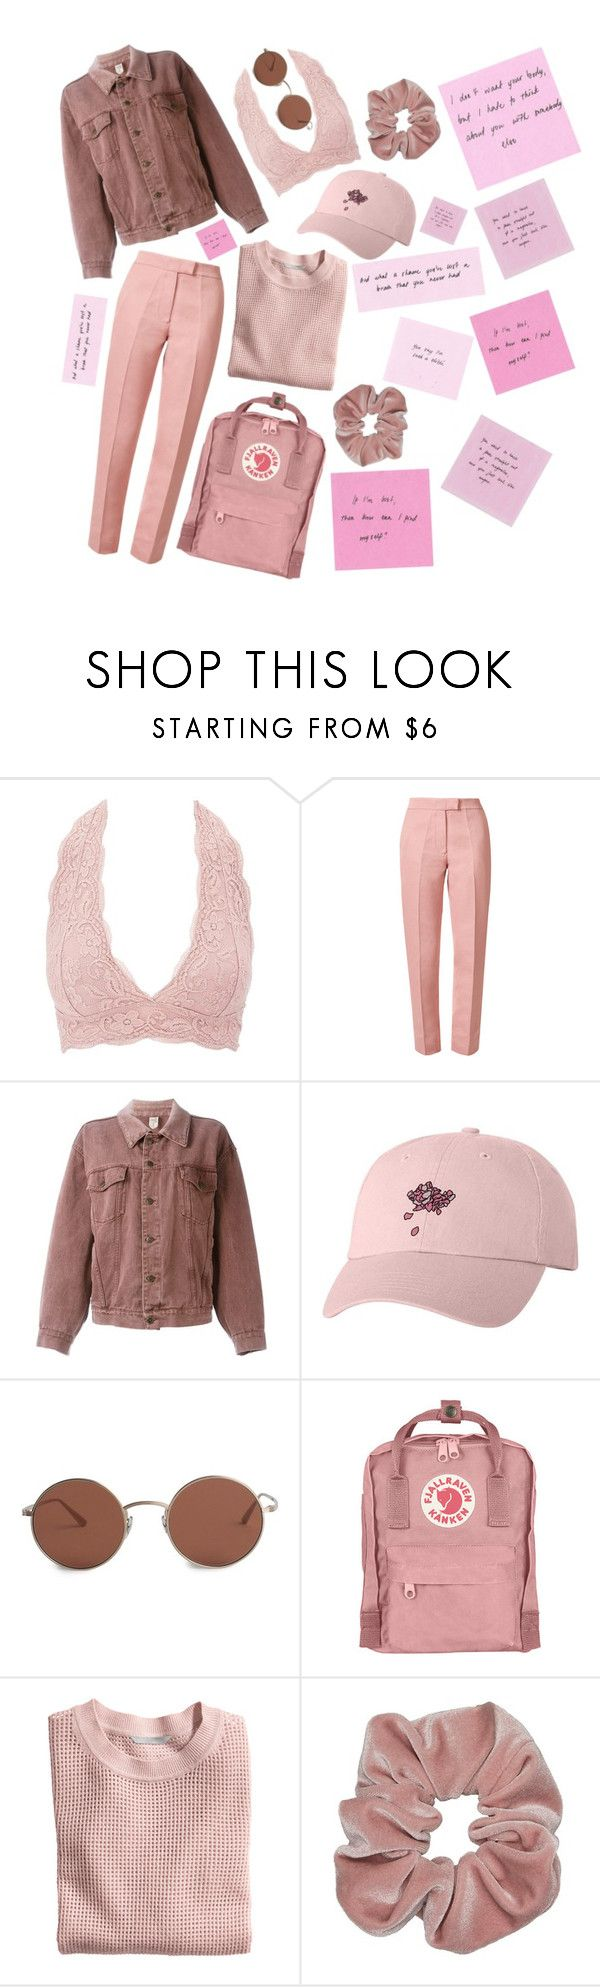 """""""Troye Sivan Merch+The 1975 Lyrics."""" by screamolullabies ❤ liked on Polyvore featuring Charlotte Russe, Orla Kiely, Moschino, The Row, Fjällräven and H&M"""